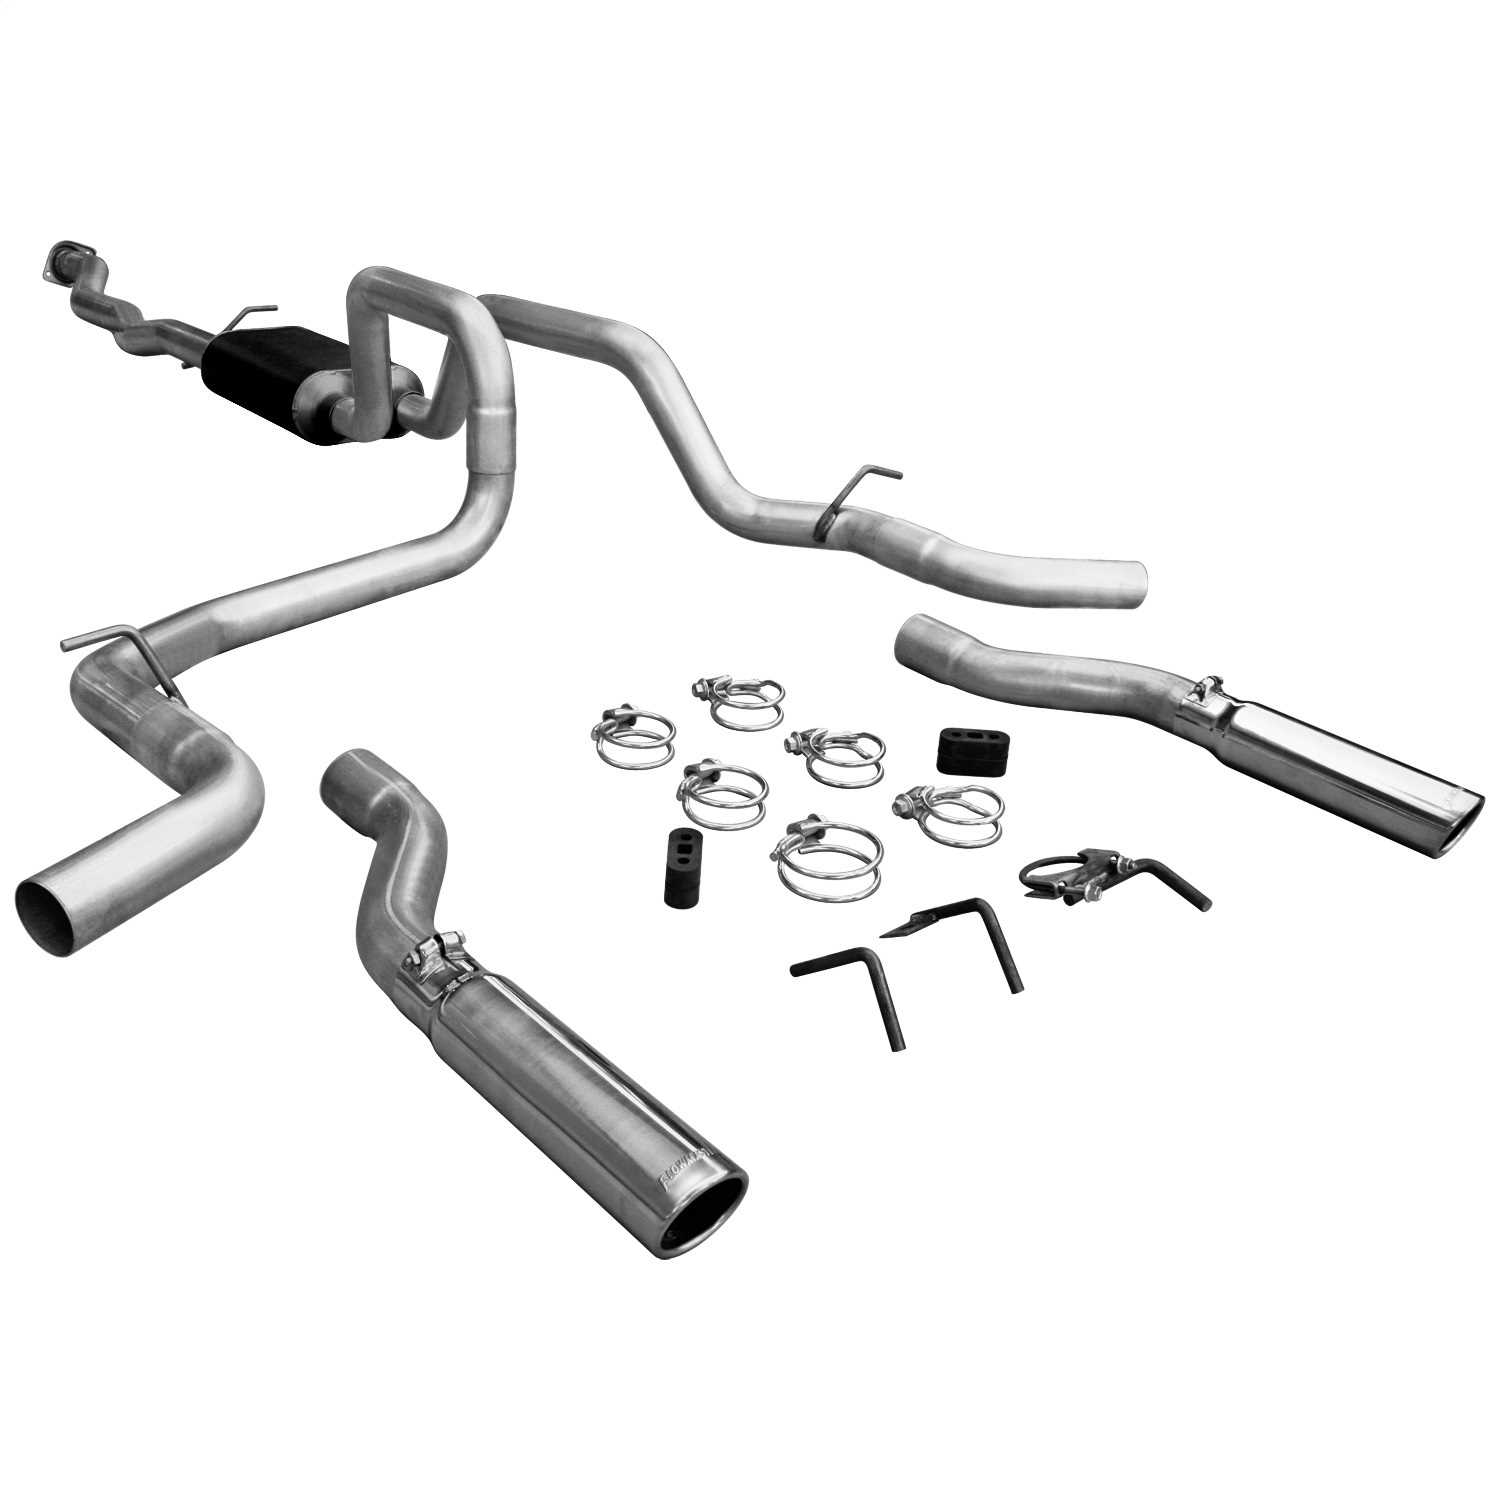 817436 Flowmaster American Thunder Cat Back Exhaust System